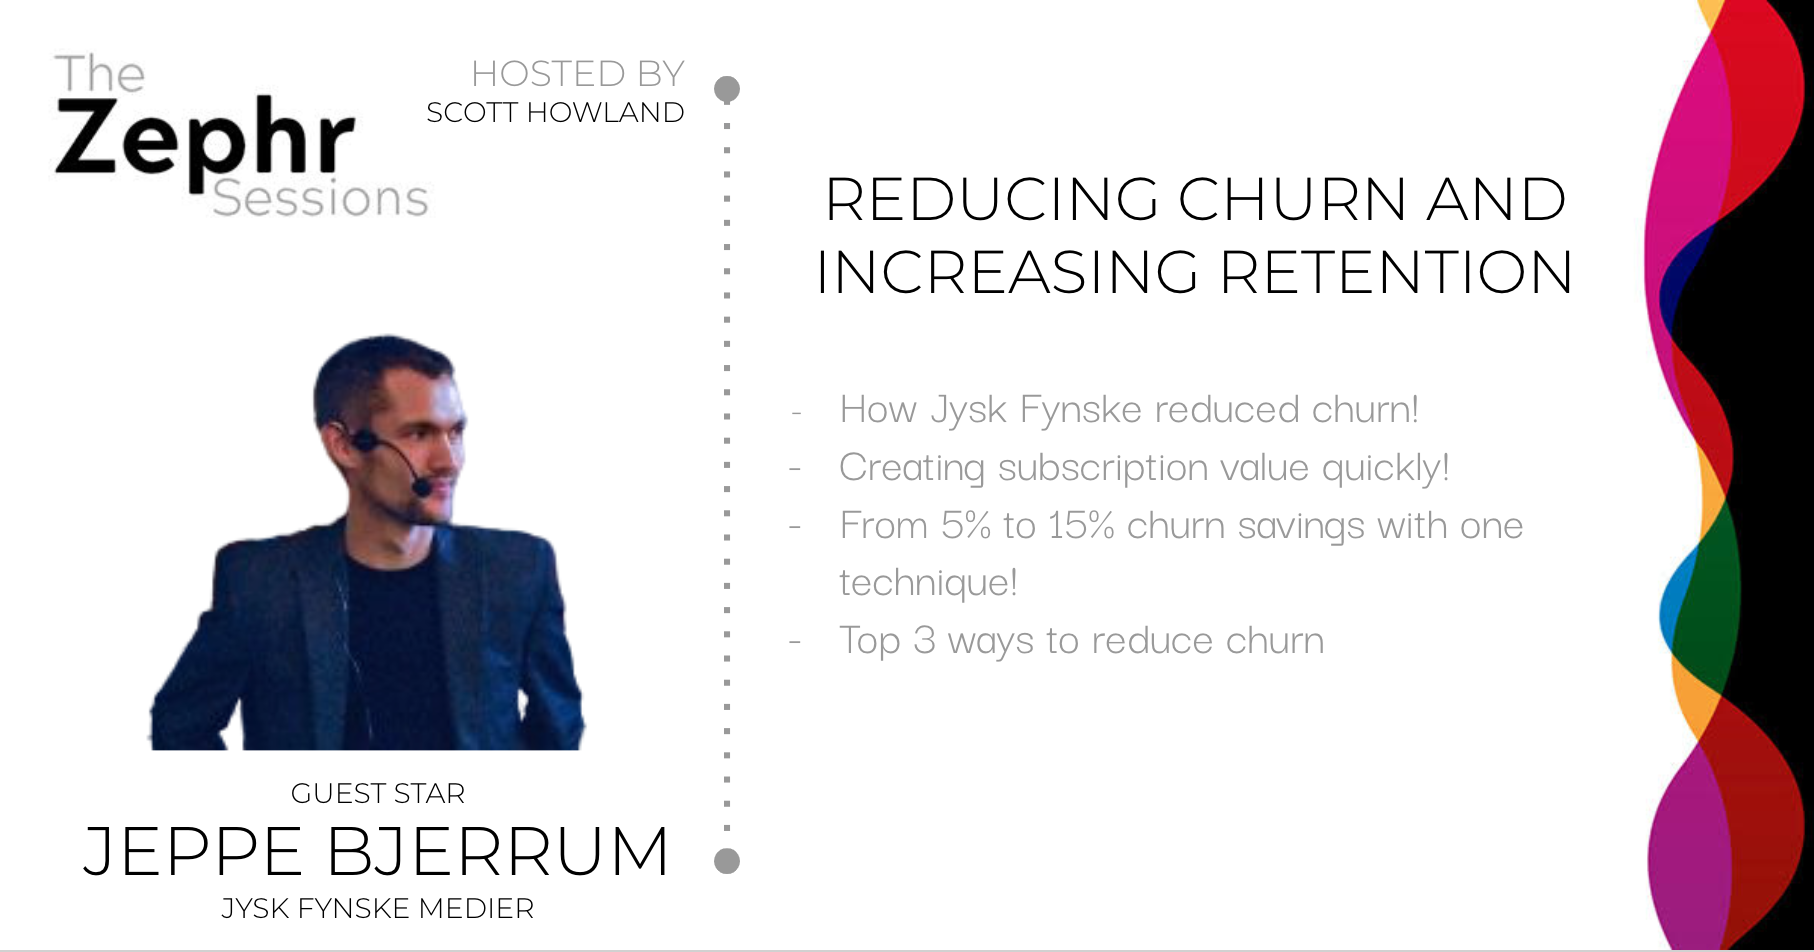 Jeppe Bjerrum - Reducing Churn and Increasing Retention - Zephr